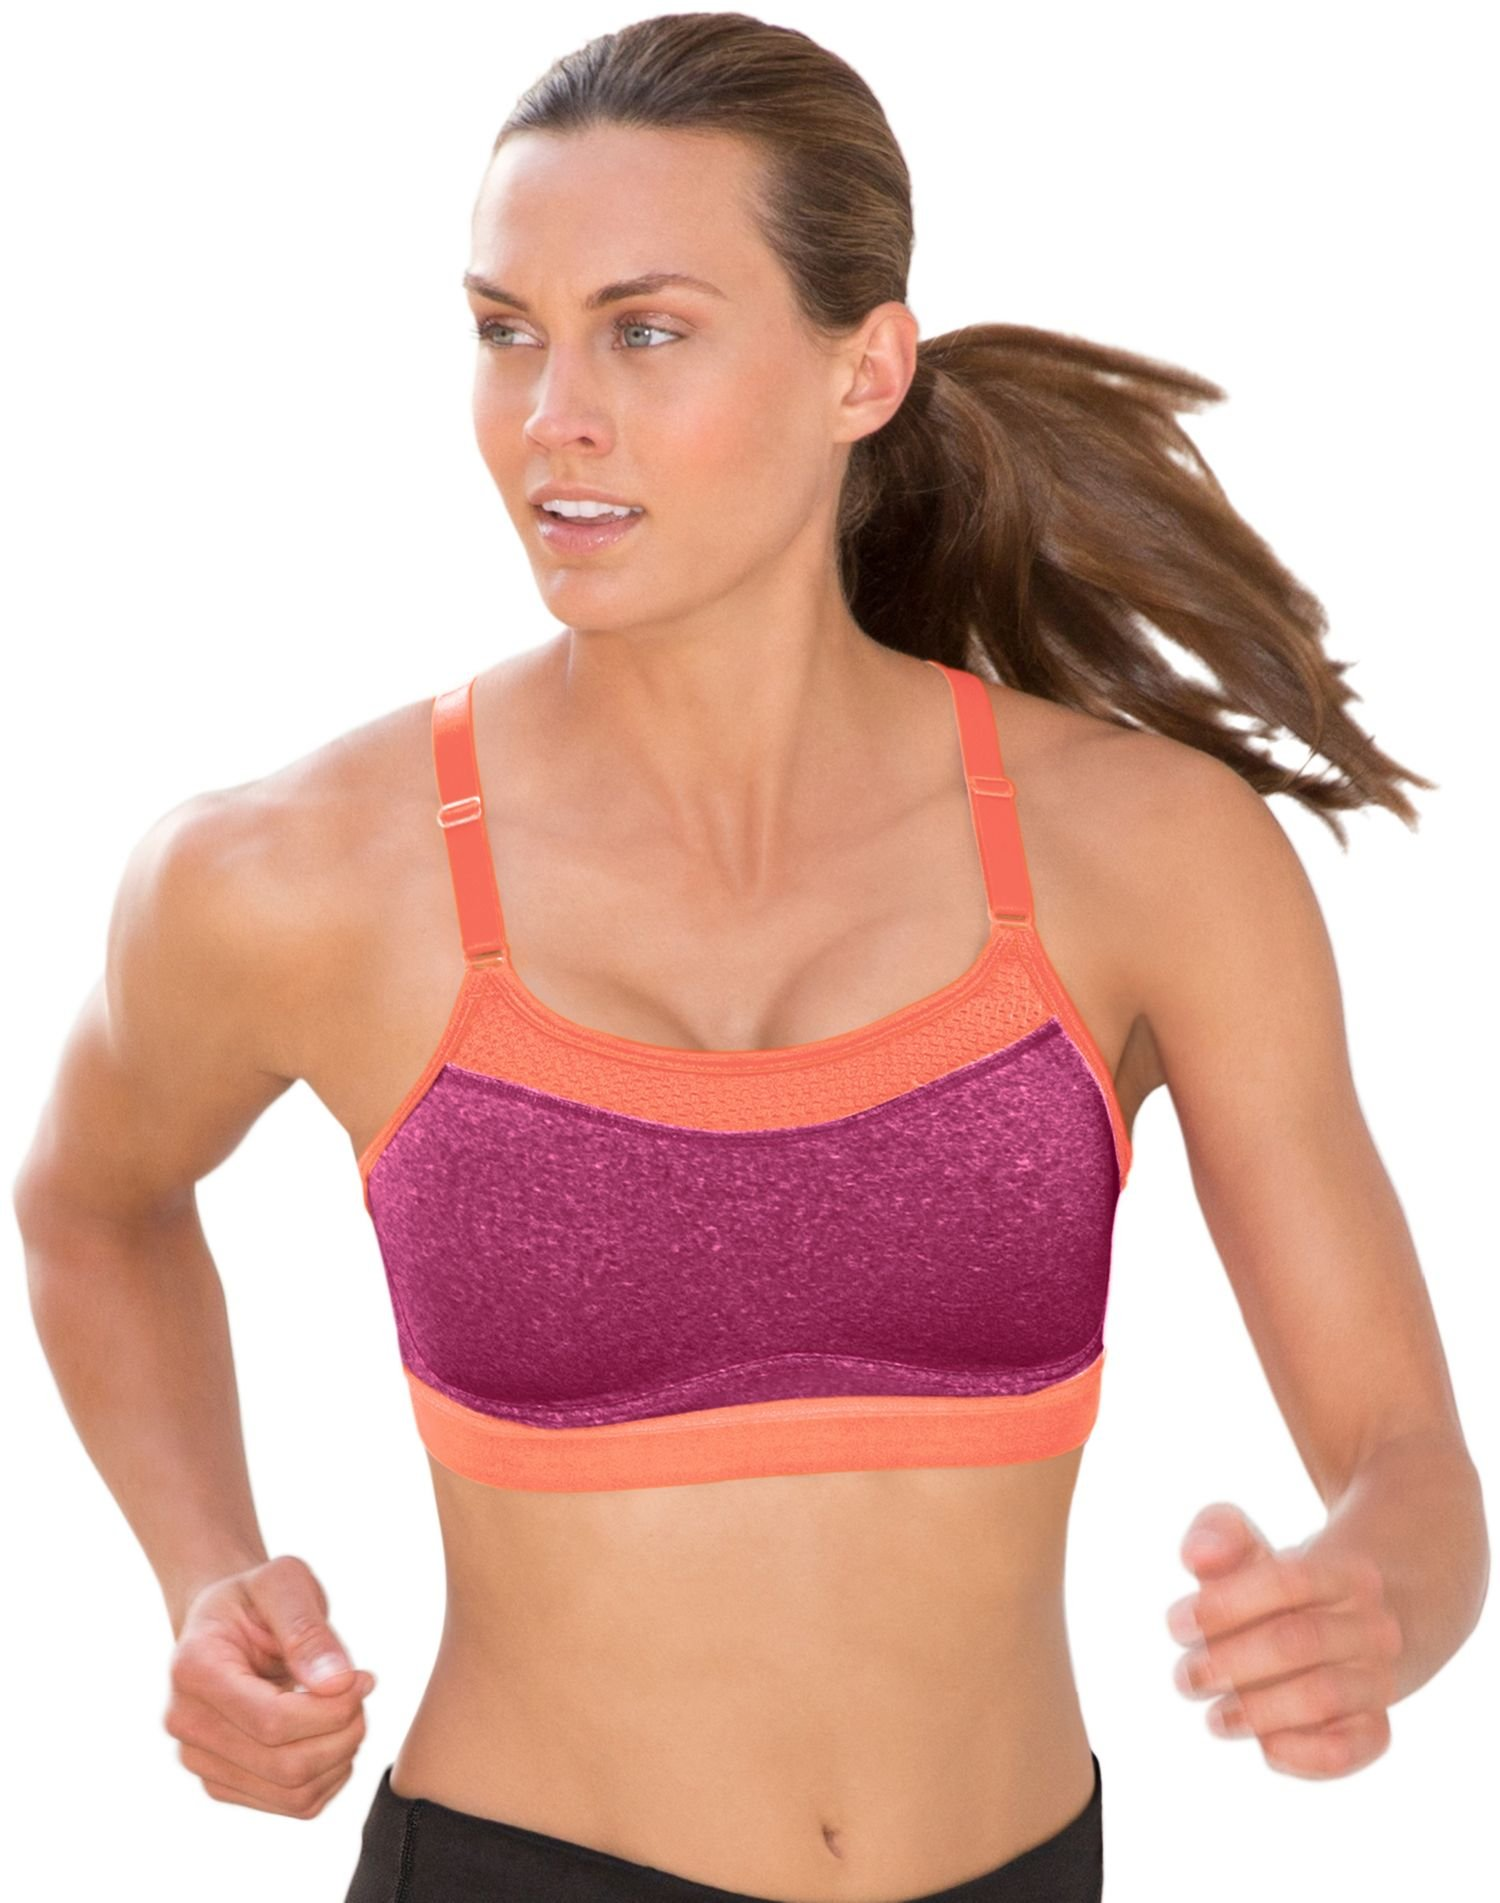 Champion Women's The Show-Off Sports Bra, Berry Delight Heather/Deep Sea Coral, Large by Champion